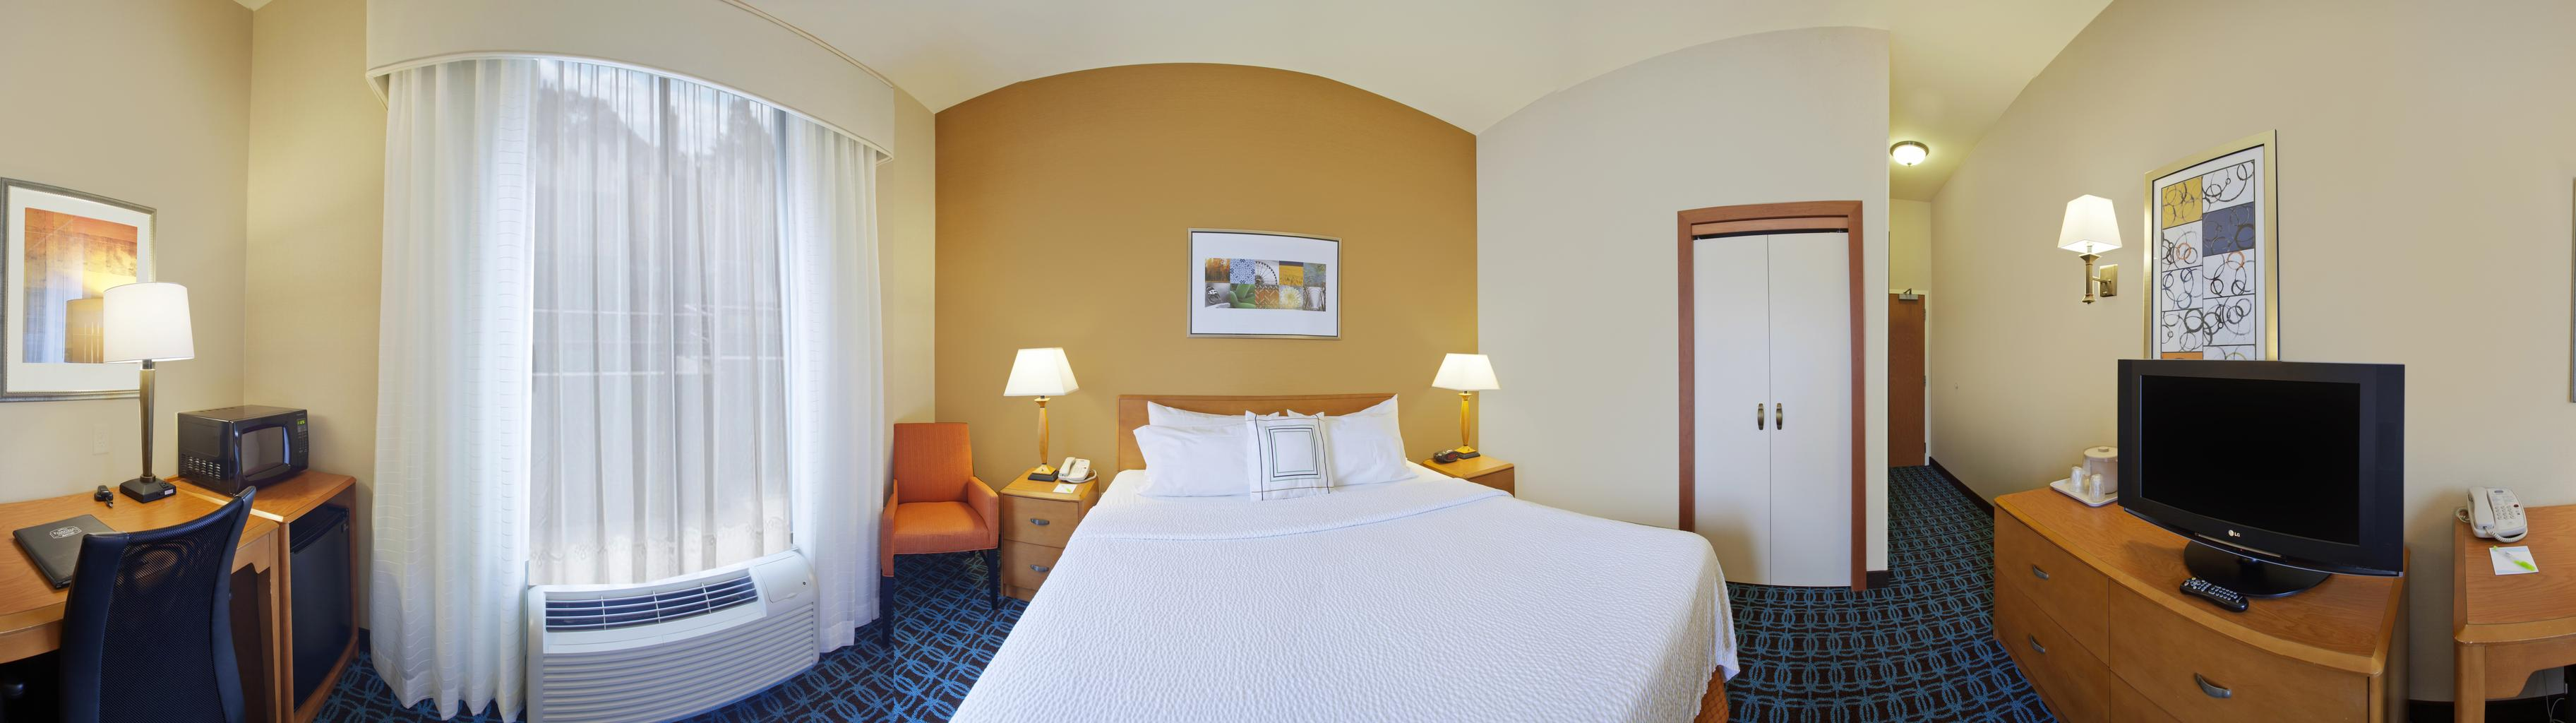 Fairfield Inn & Suites by Marriott Detroit Metro Airport Romulus image 3